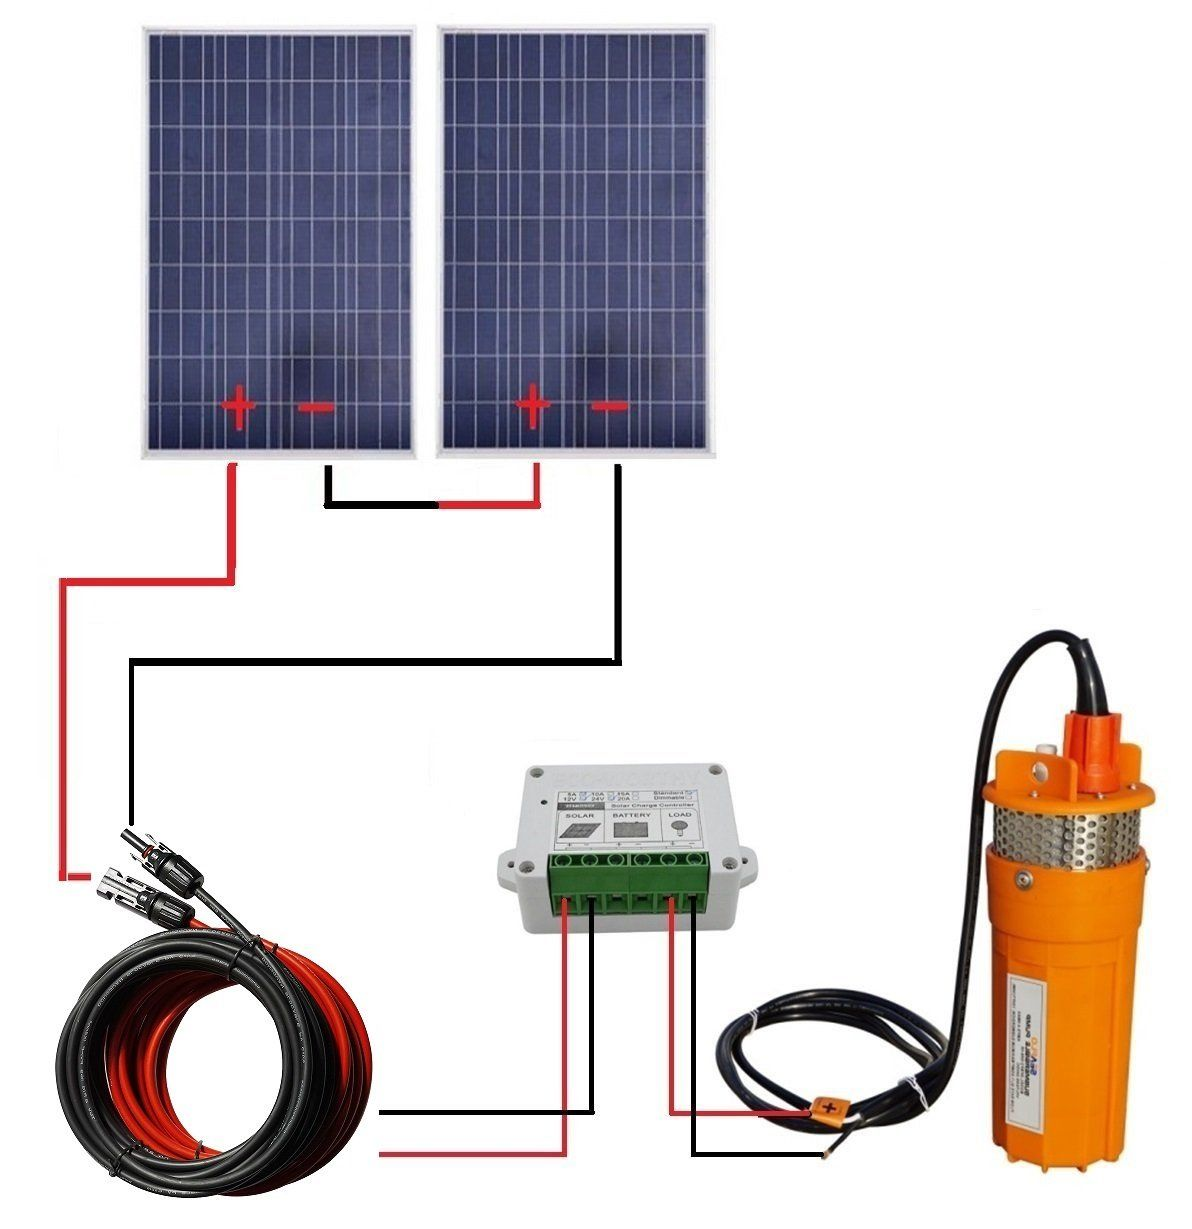 Ecoworthy 2pcs 100 Watts Polycrystalline Solar Panel With 24v Submersible Well Pump And Mounting Kits For Water Solar Water Pump Water Pump System Solar Panels